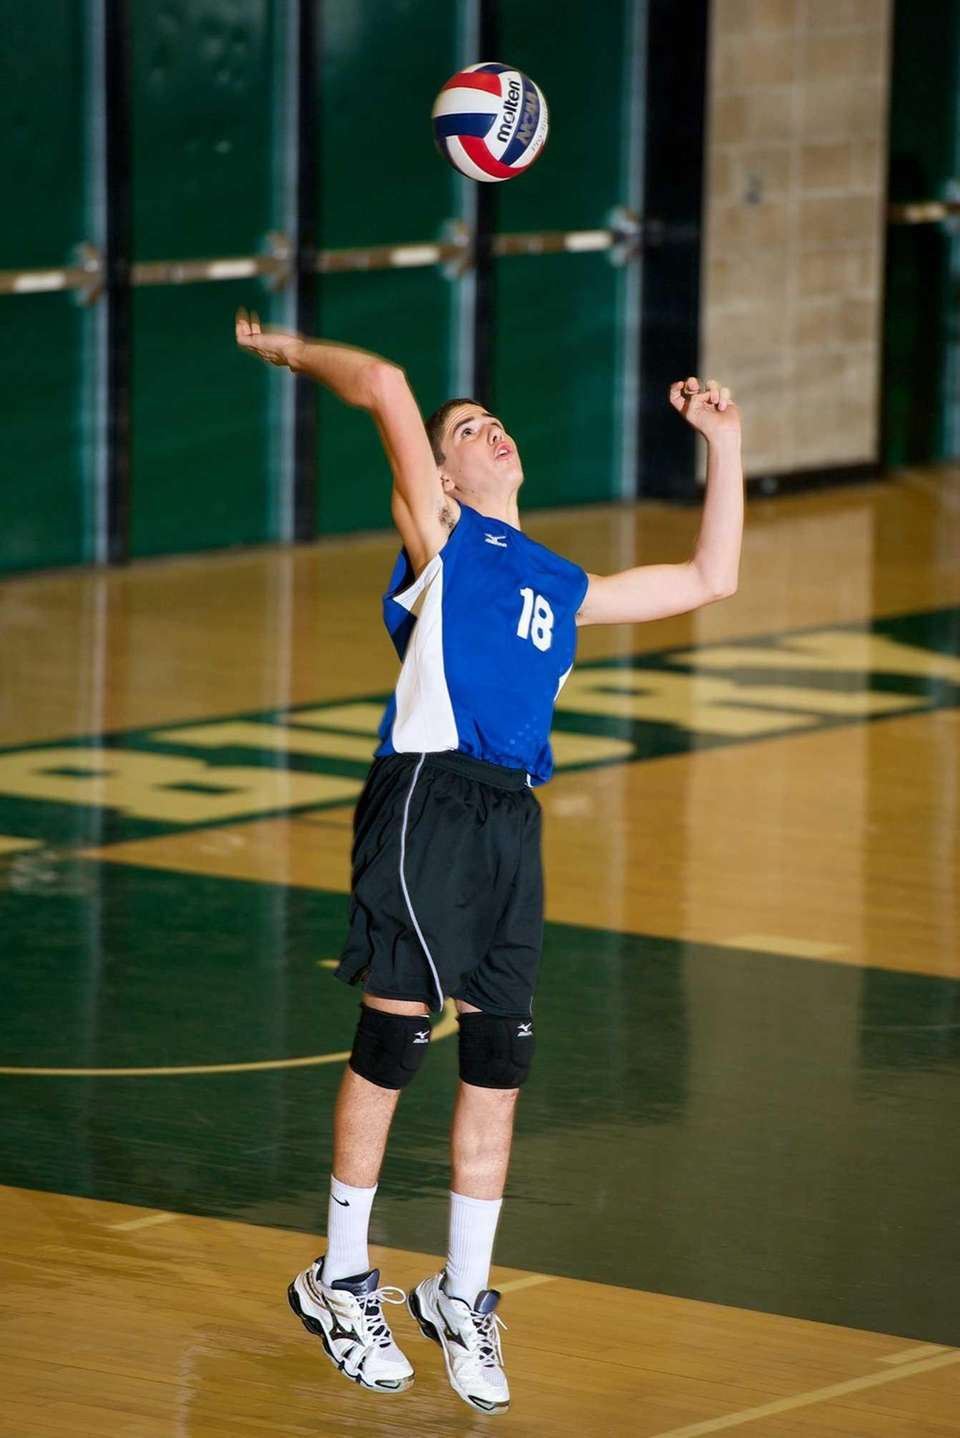 Long Beach's Ryan Silverman (18) serves the ball